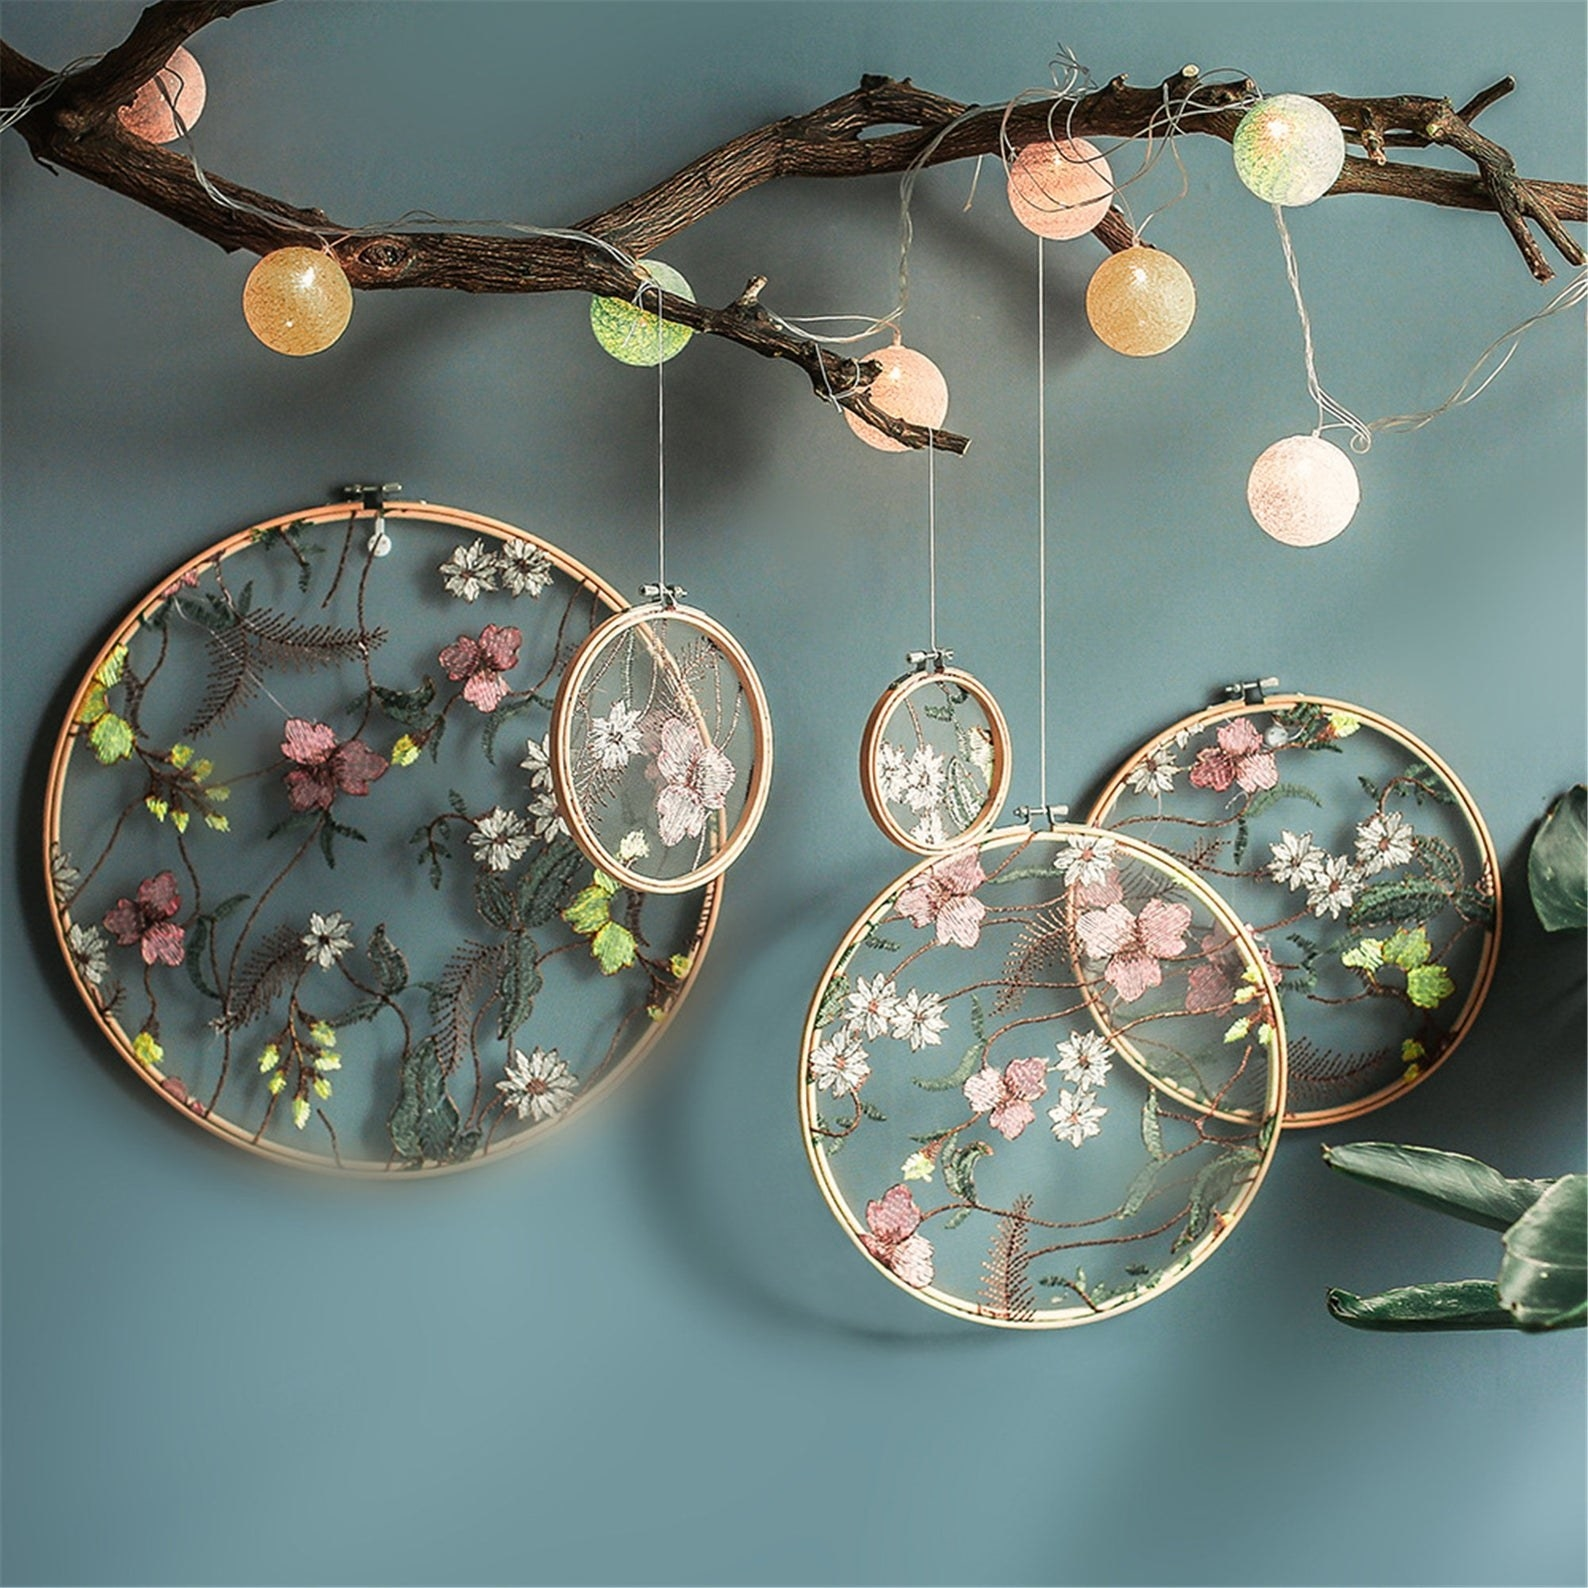 Embroidered flowers in a transparent background in a light wooden hoop hanging from the ceiling